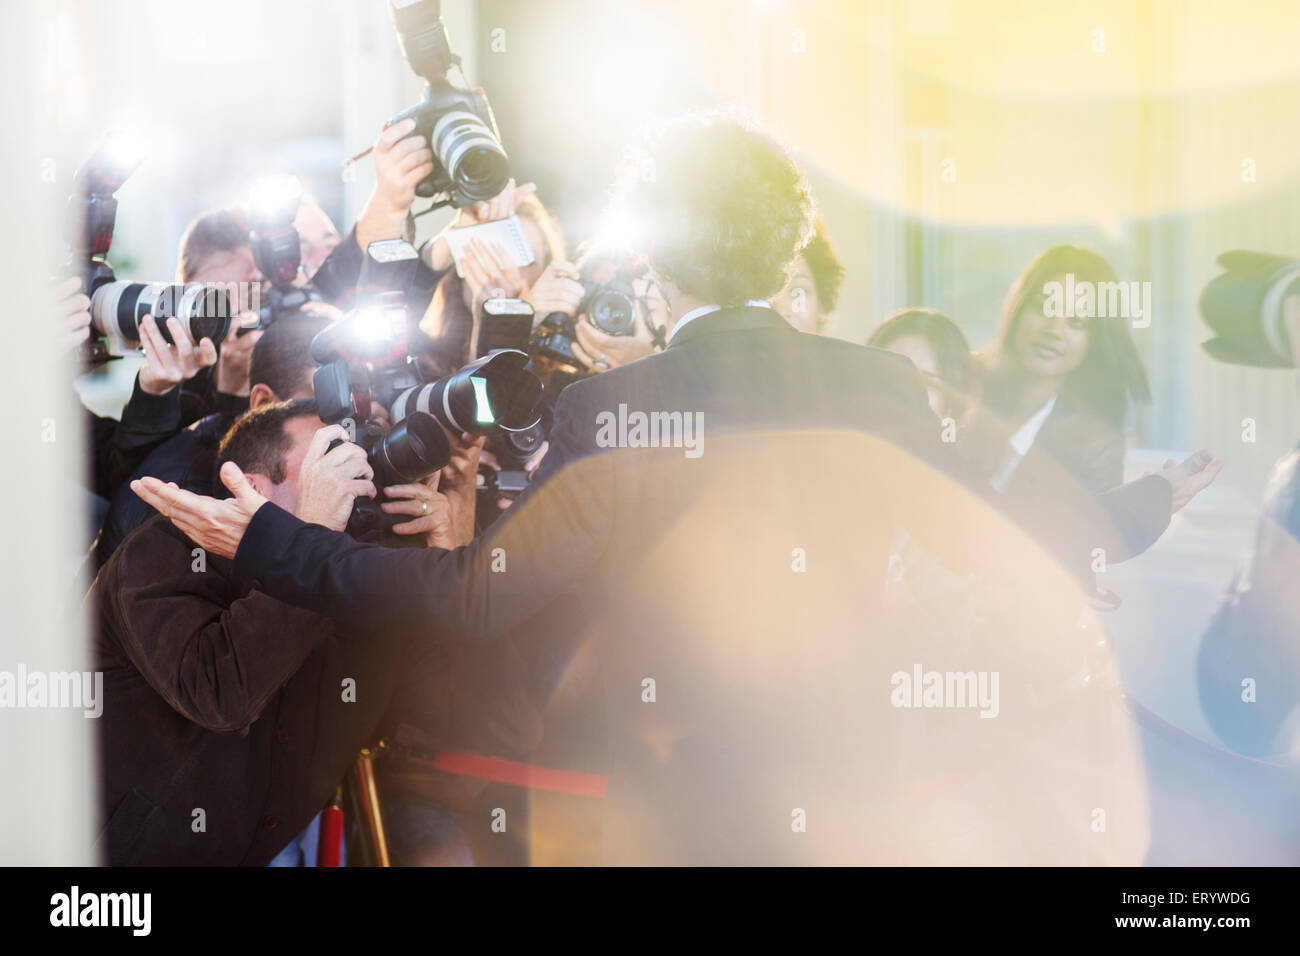 Celebrity being photographed by paparazzi at event - Stock Image